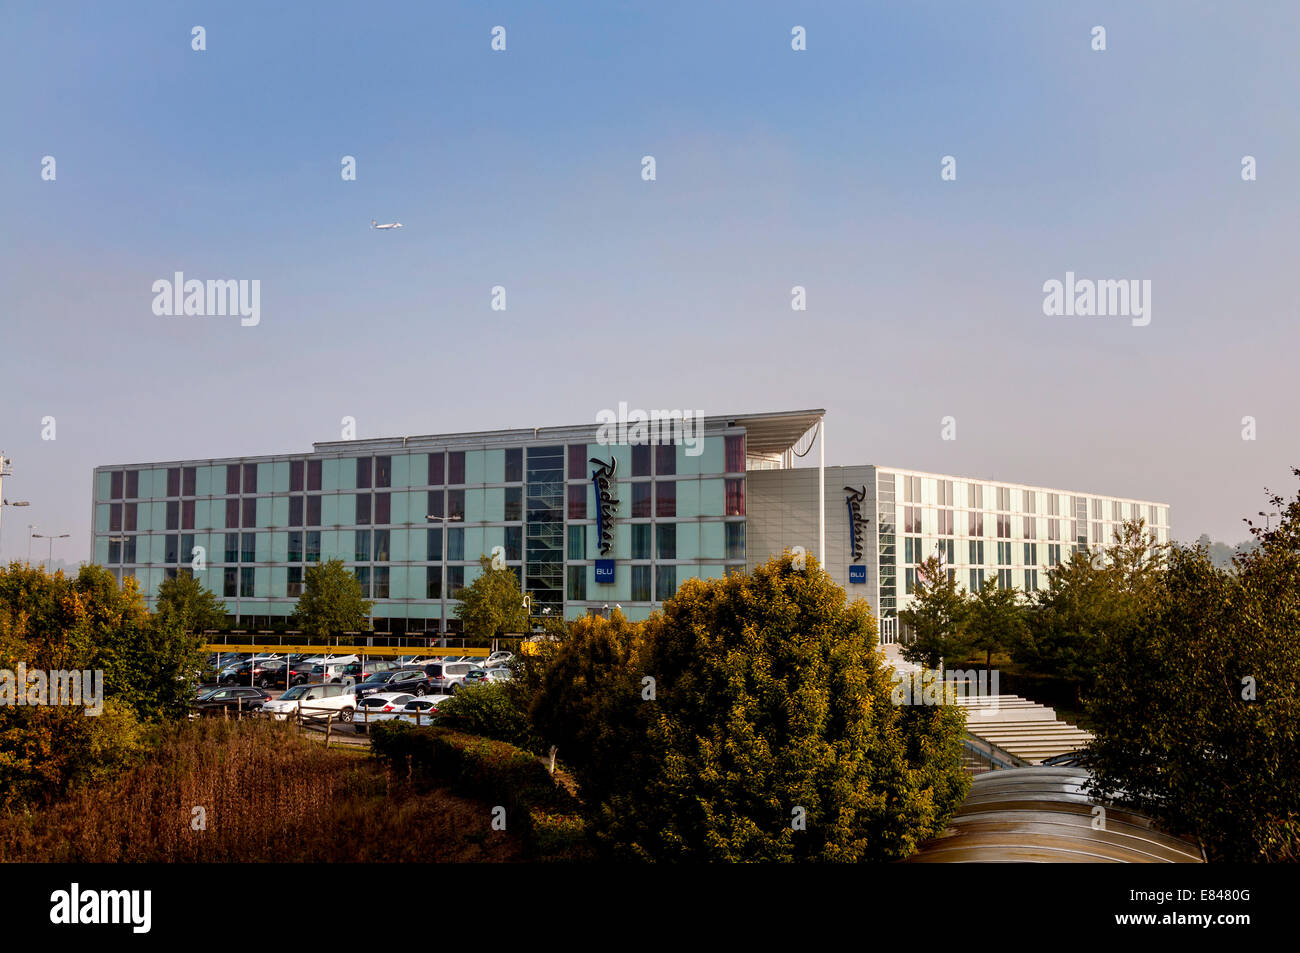 Radisson Blu hotel at Stansted Airport England UK - Stock Image